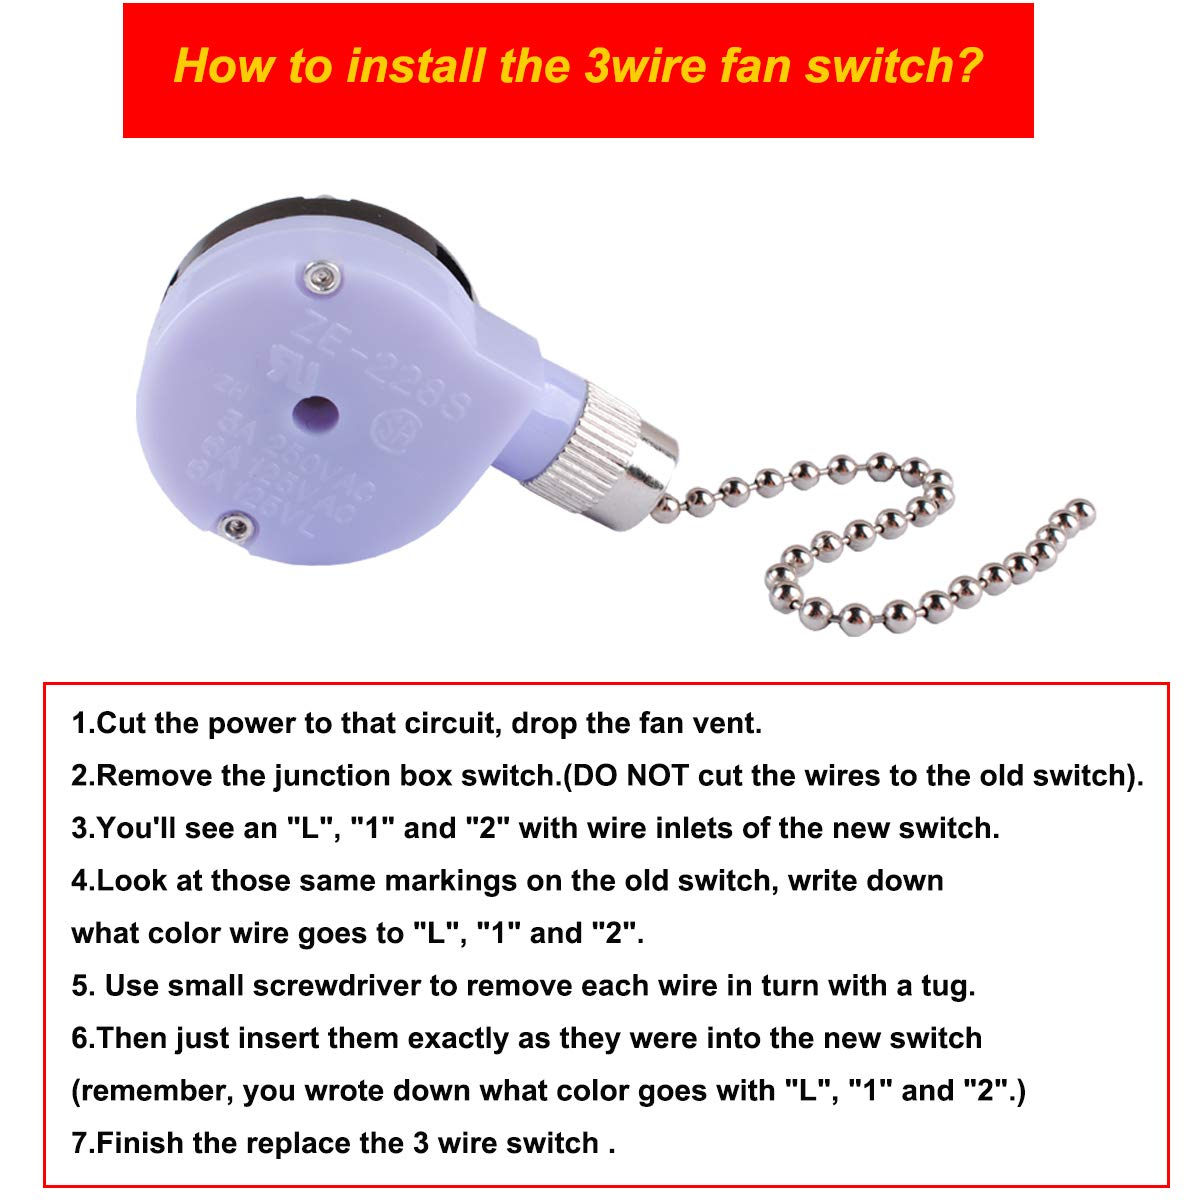 Ze 228s Switch Electrical Pull Chain Two Speed Ceiling Fan Jin You Wiring Replace For Gardner Bender Gsw 33 Zing Ear Off On 3 Wire Lamps By Ketofa